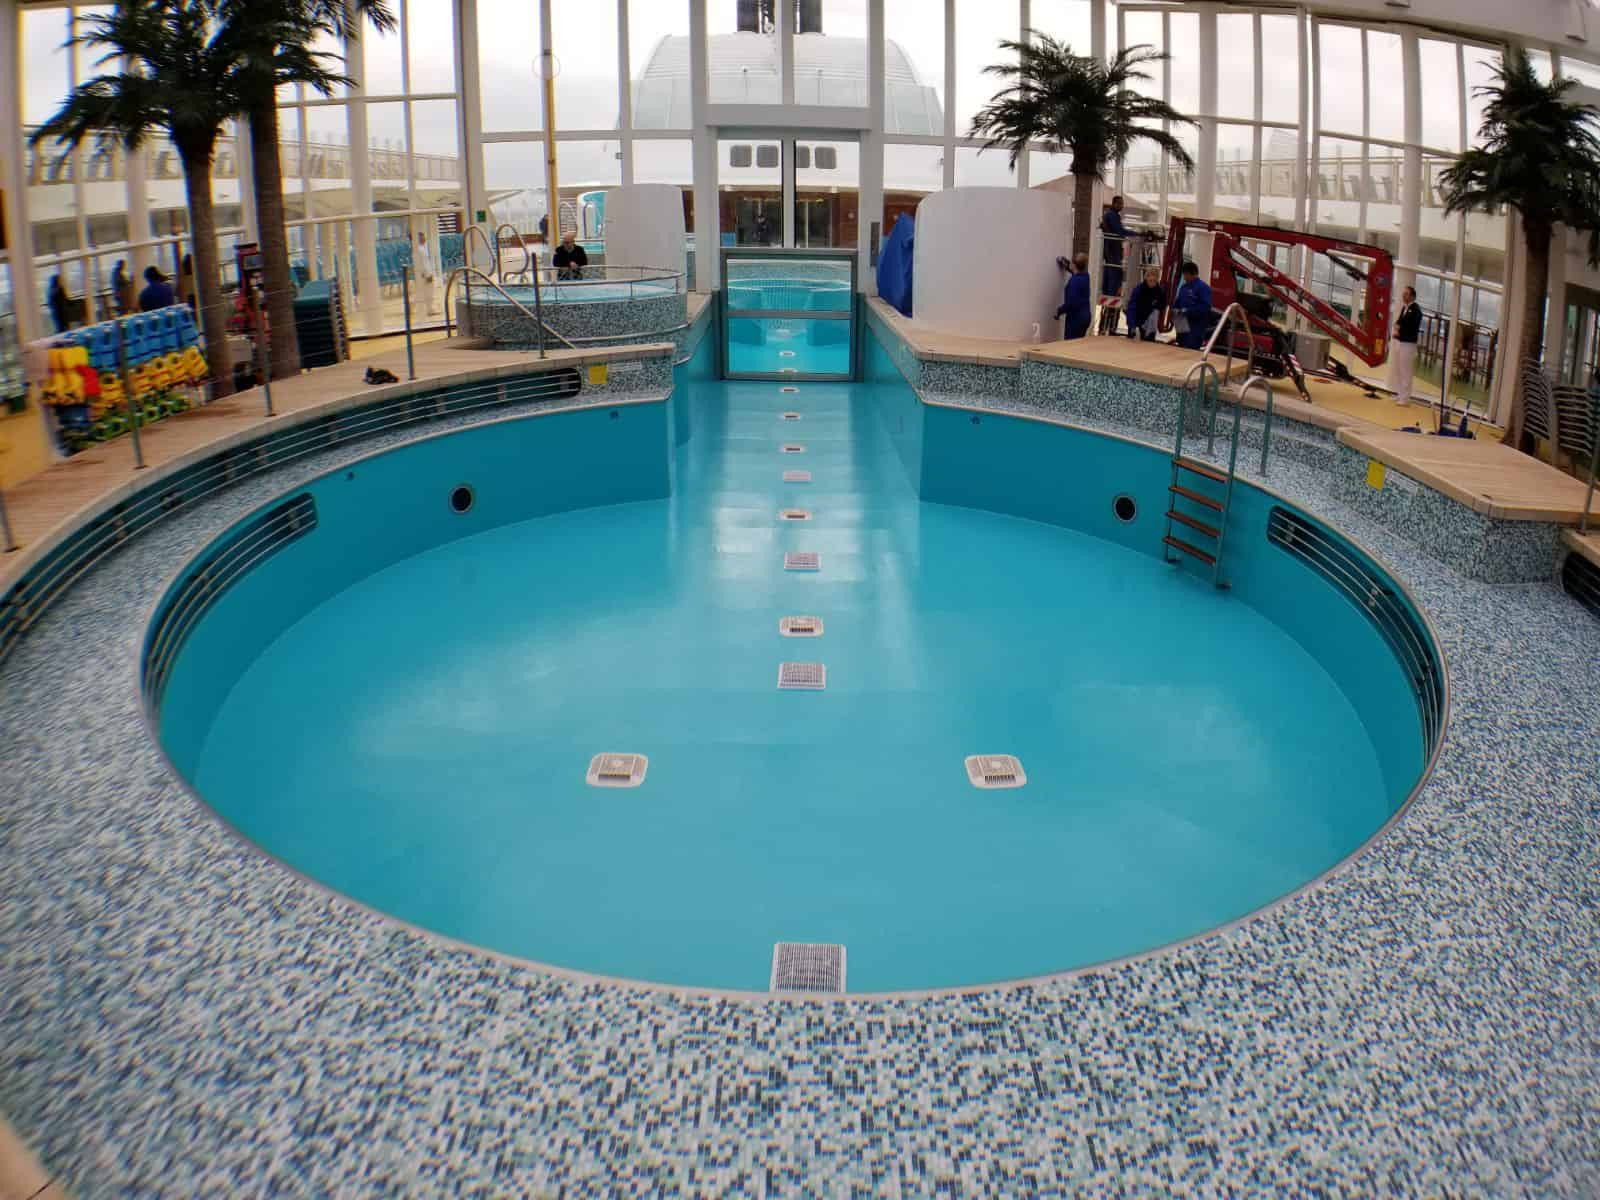 large cruise ship swimming pool painted in blue